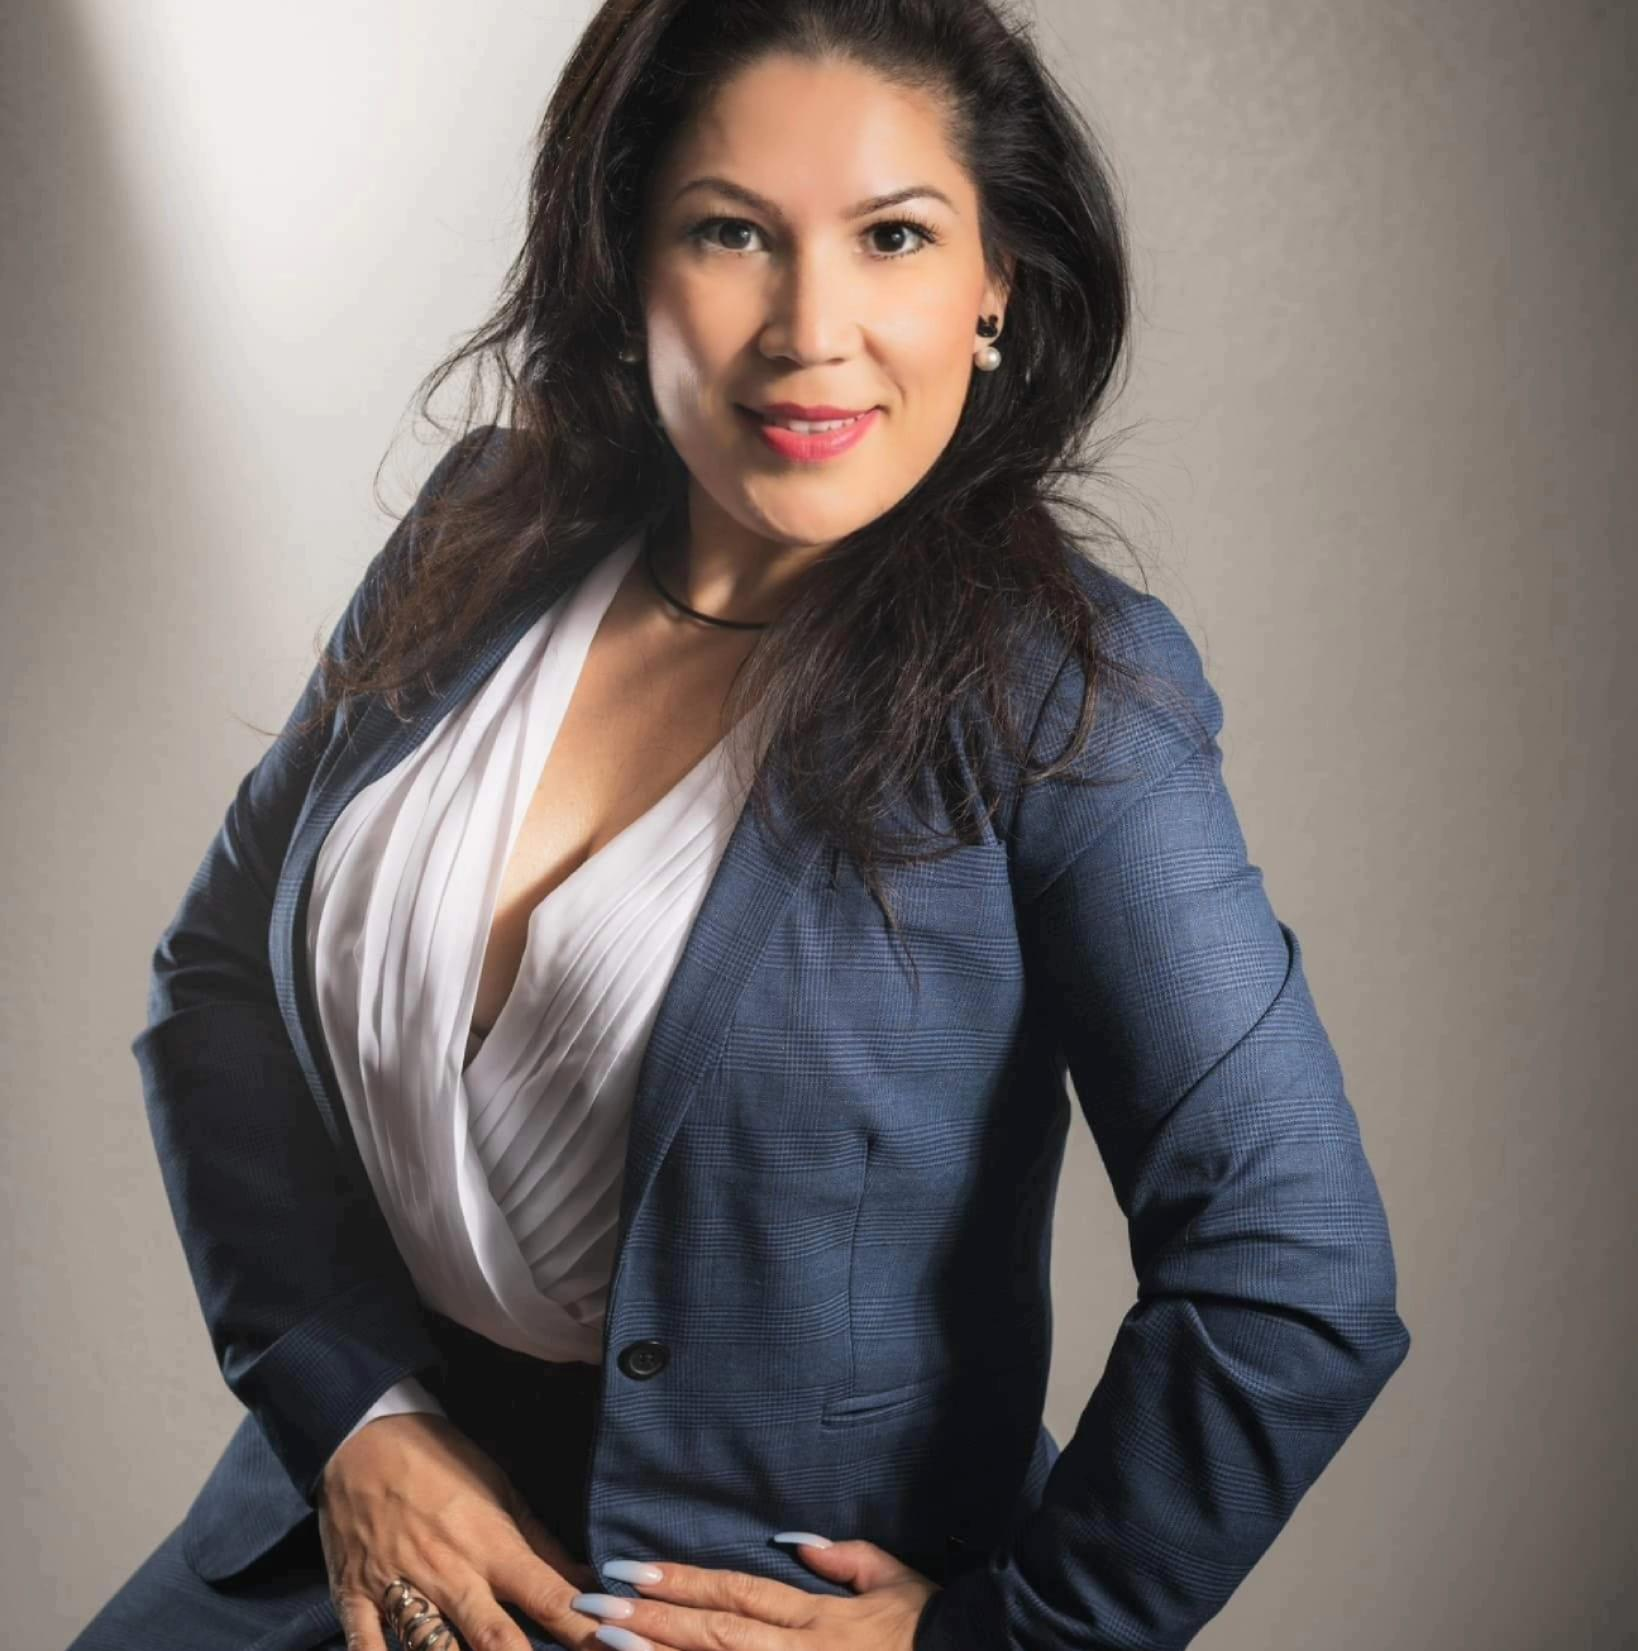 VERONICA SANDOVAL Your Financial Professional & Insurance Agent